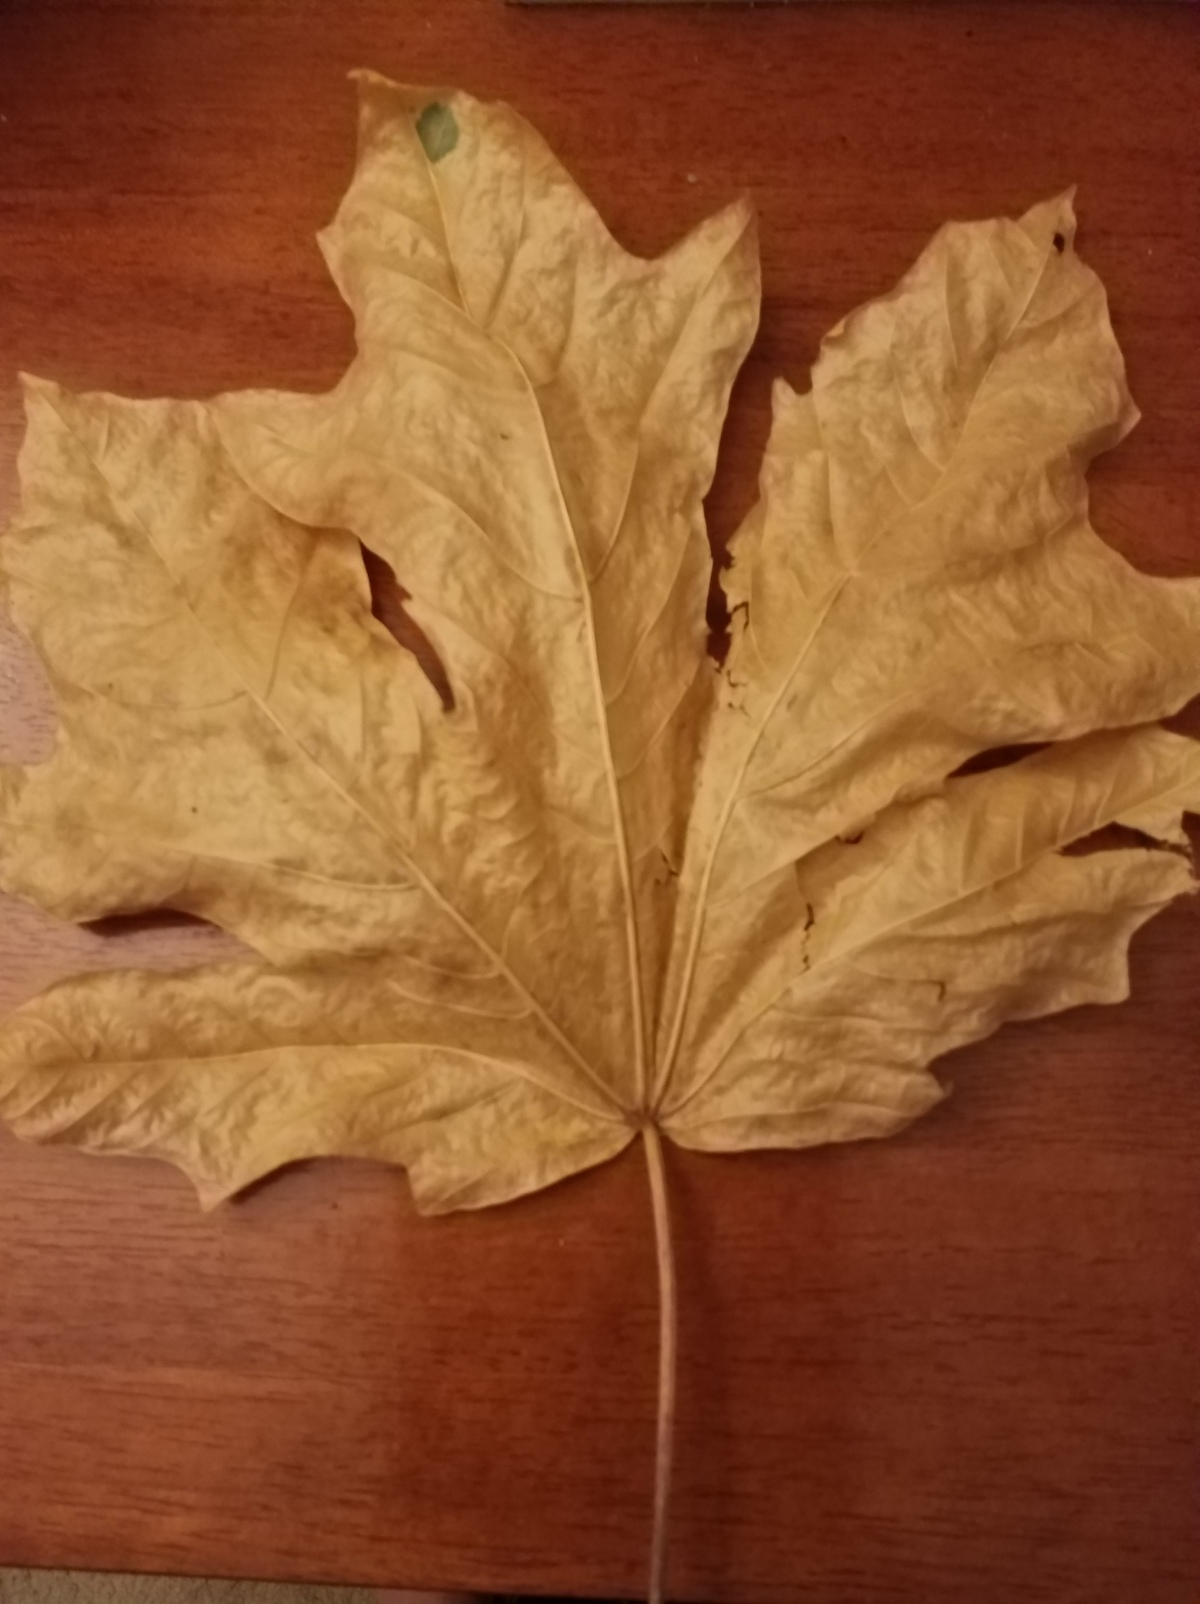 A leaf left in a study